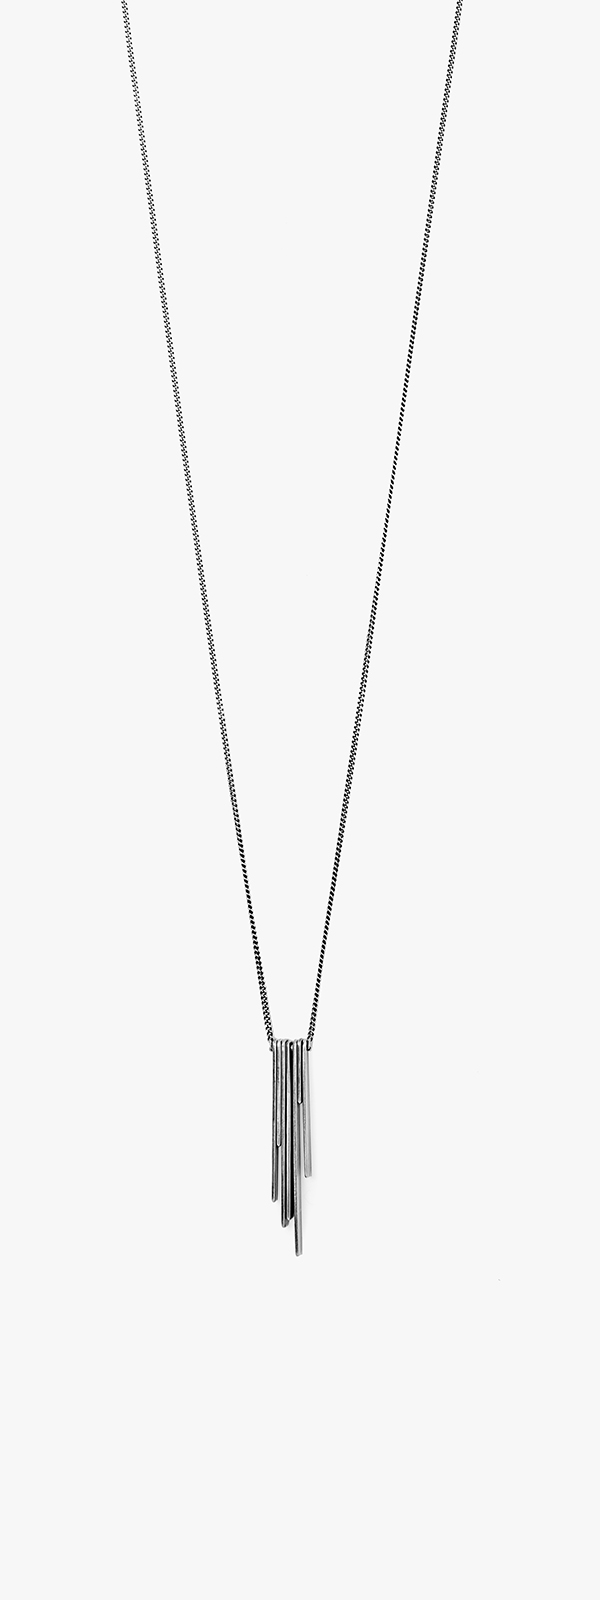 Image of I.D. Tag/Diamond Necklace